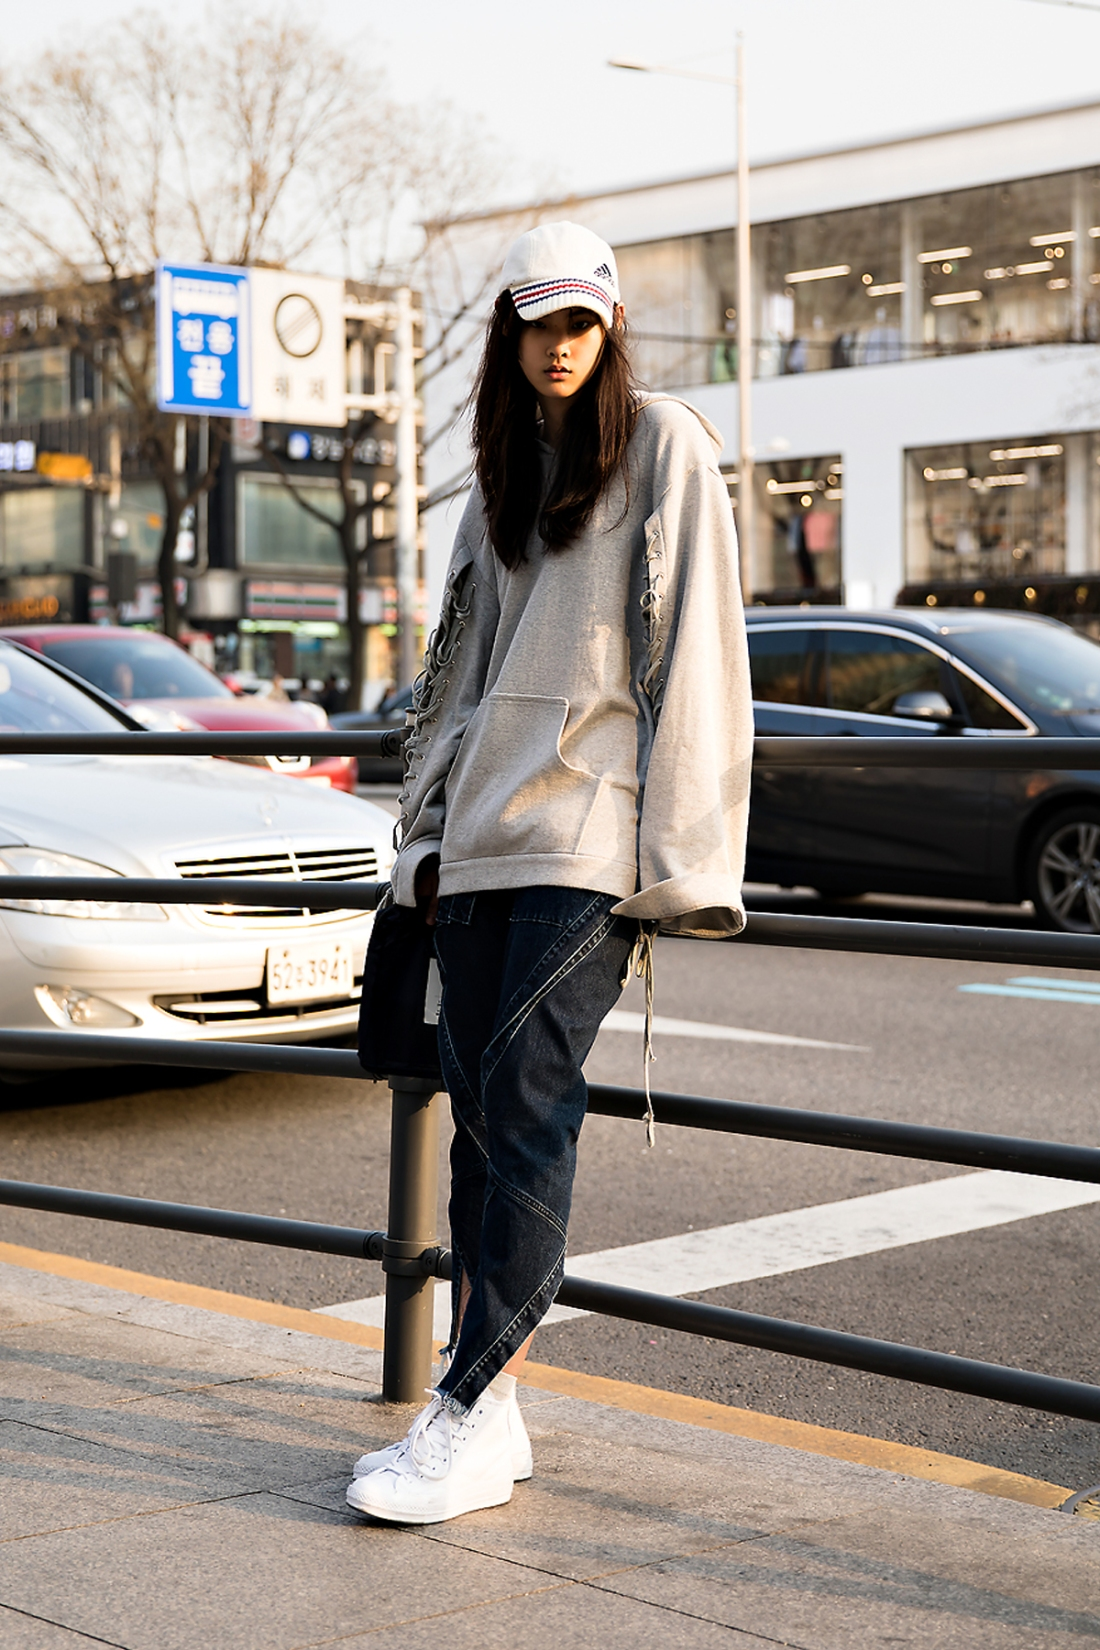 EllisAhn, Street Fashion 2017 in Seoul.jpg